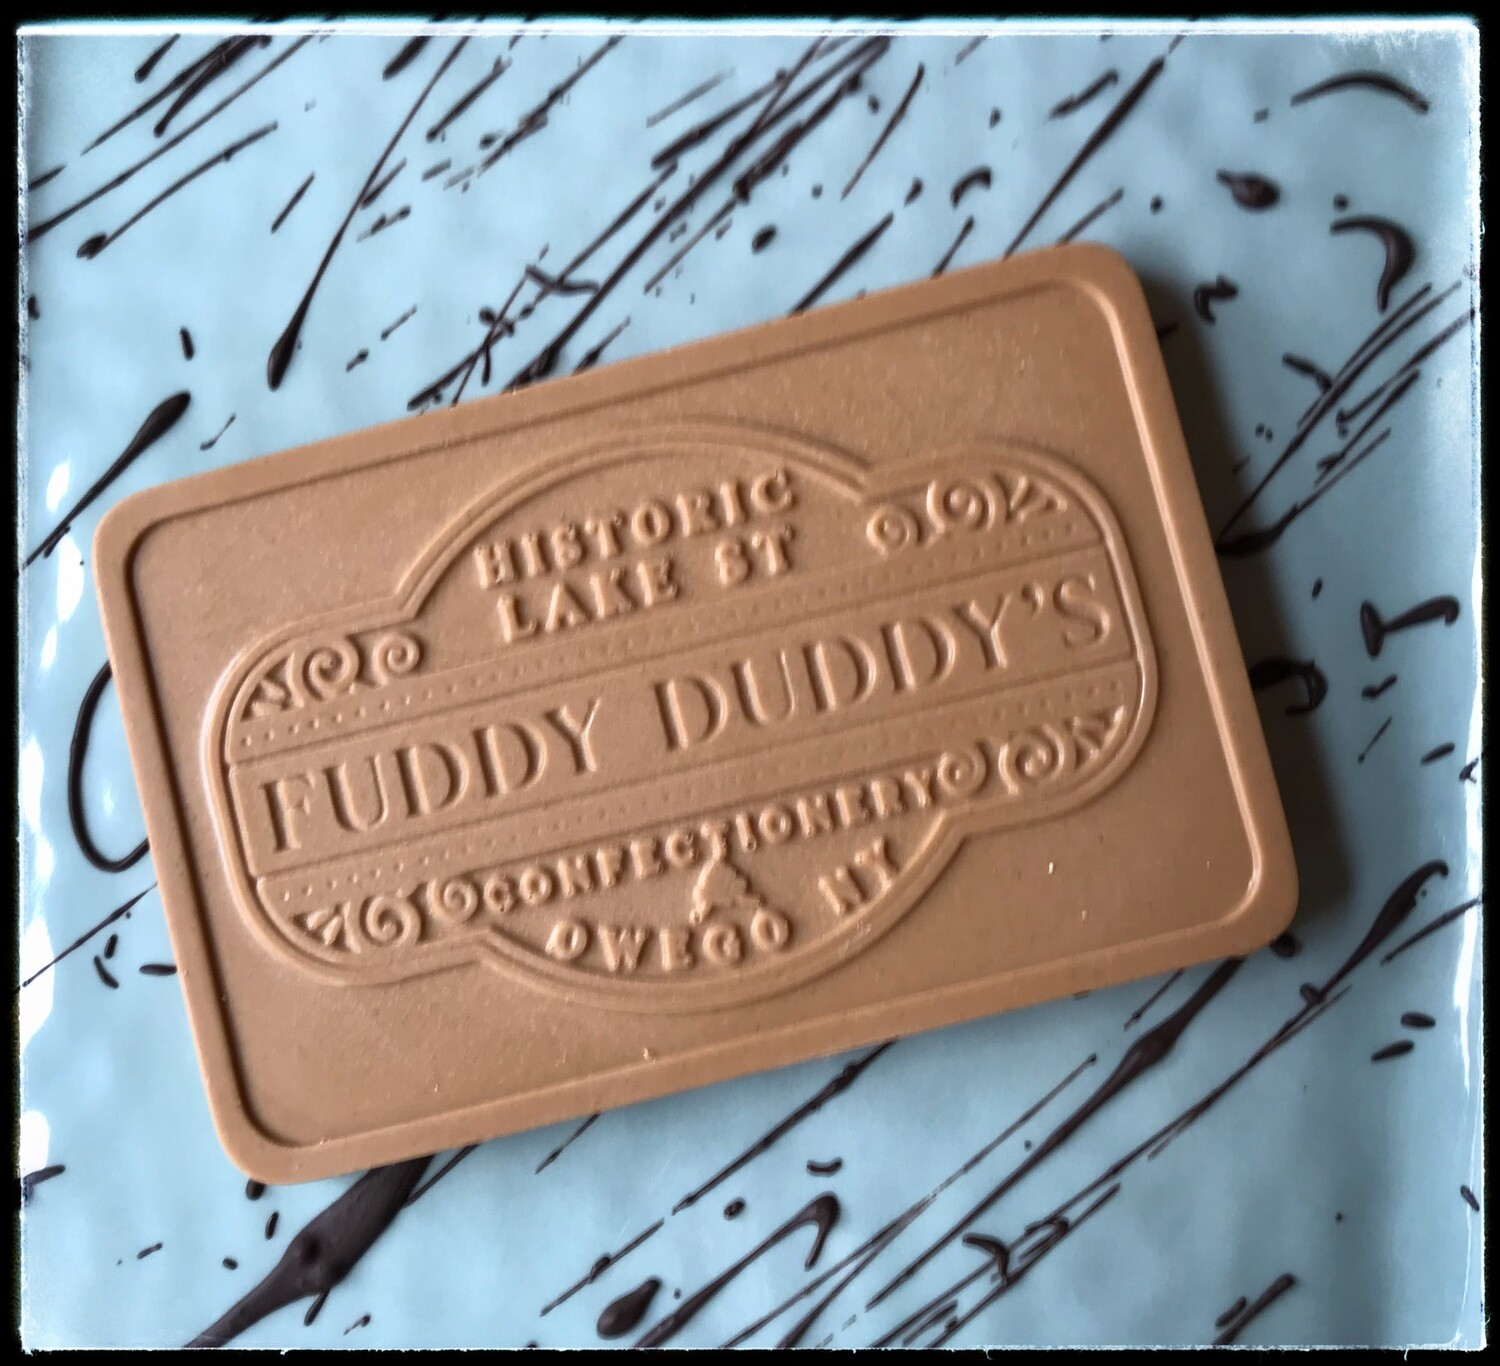 Fuddy Duddy's Peanut Butter Chocolate Bar